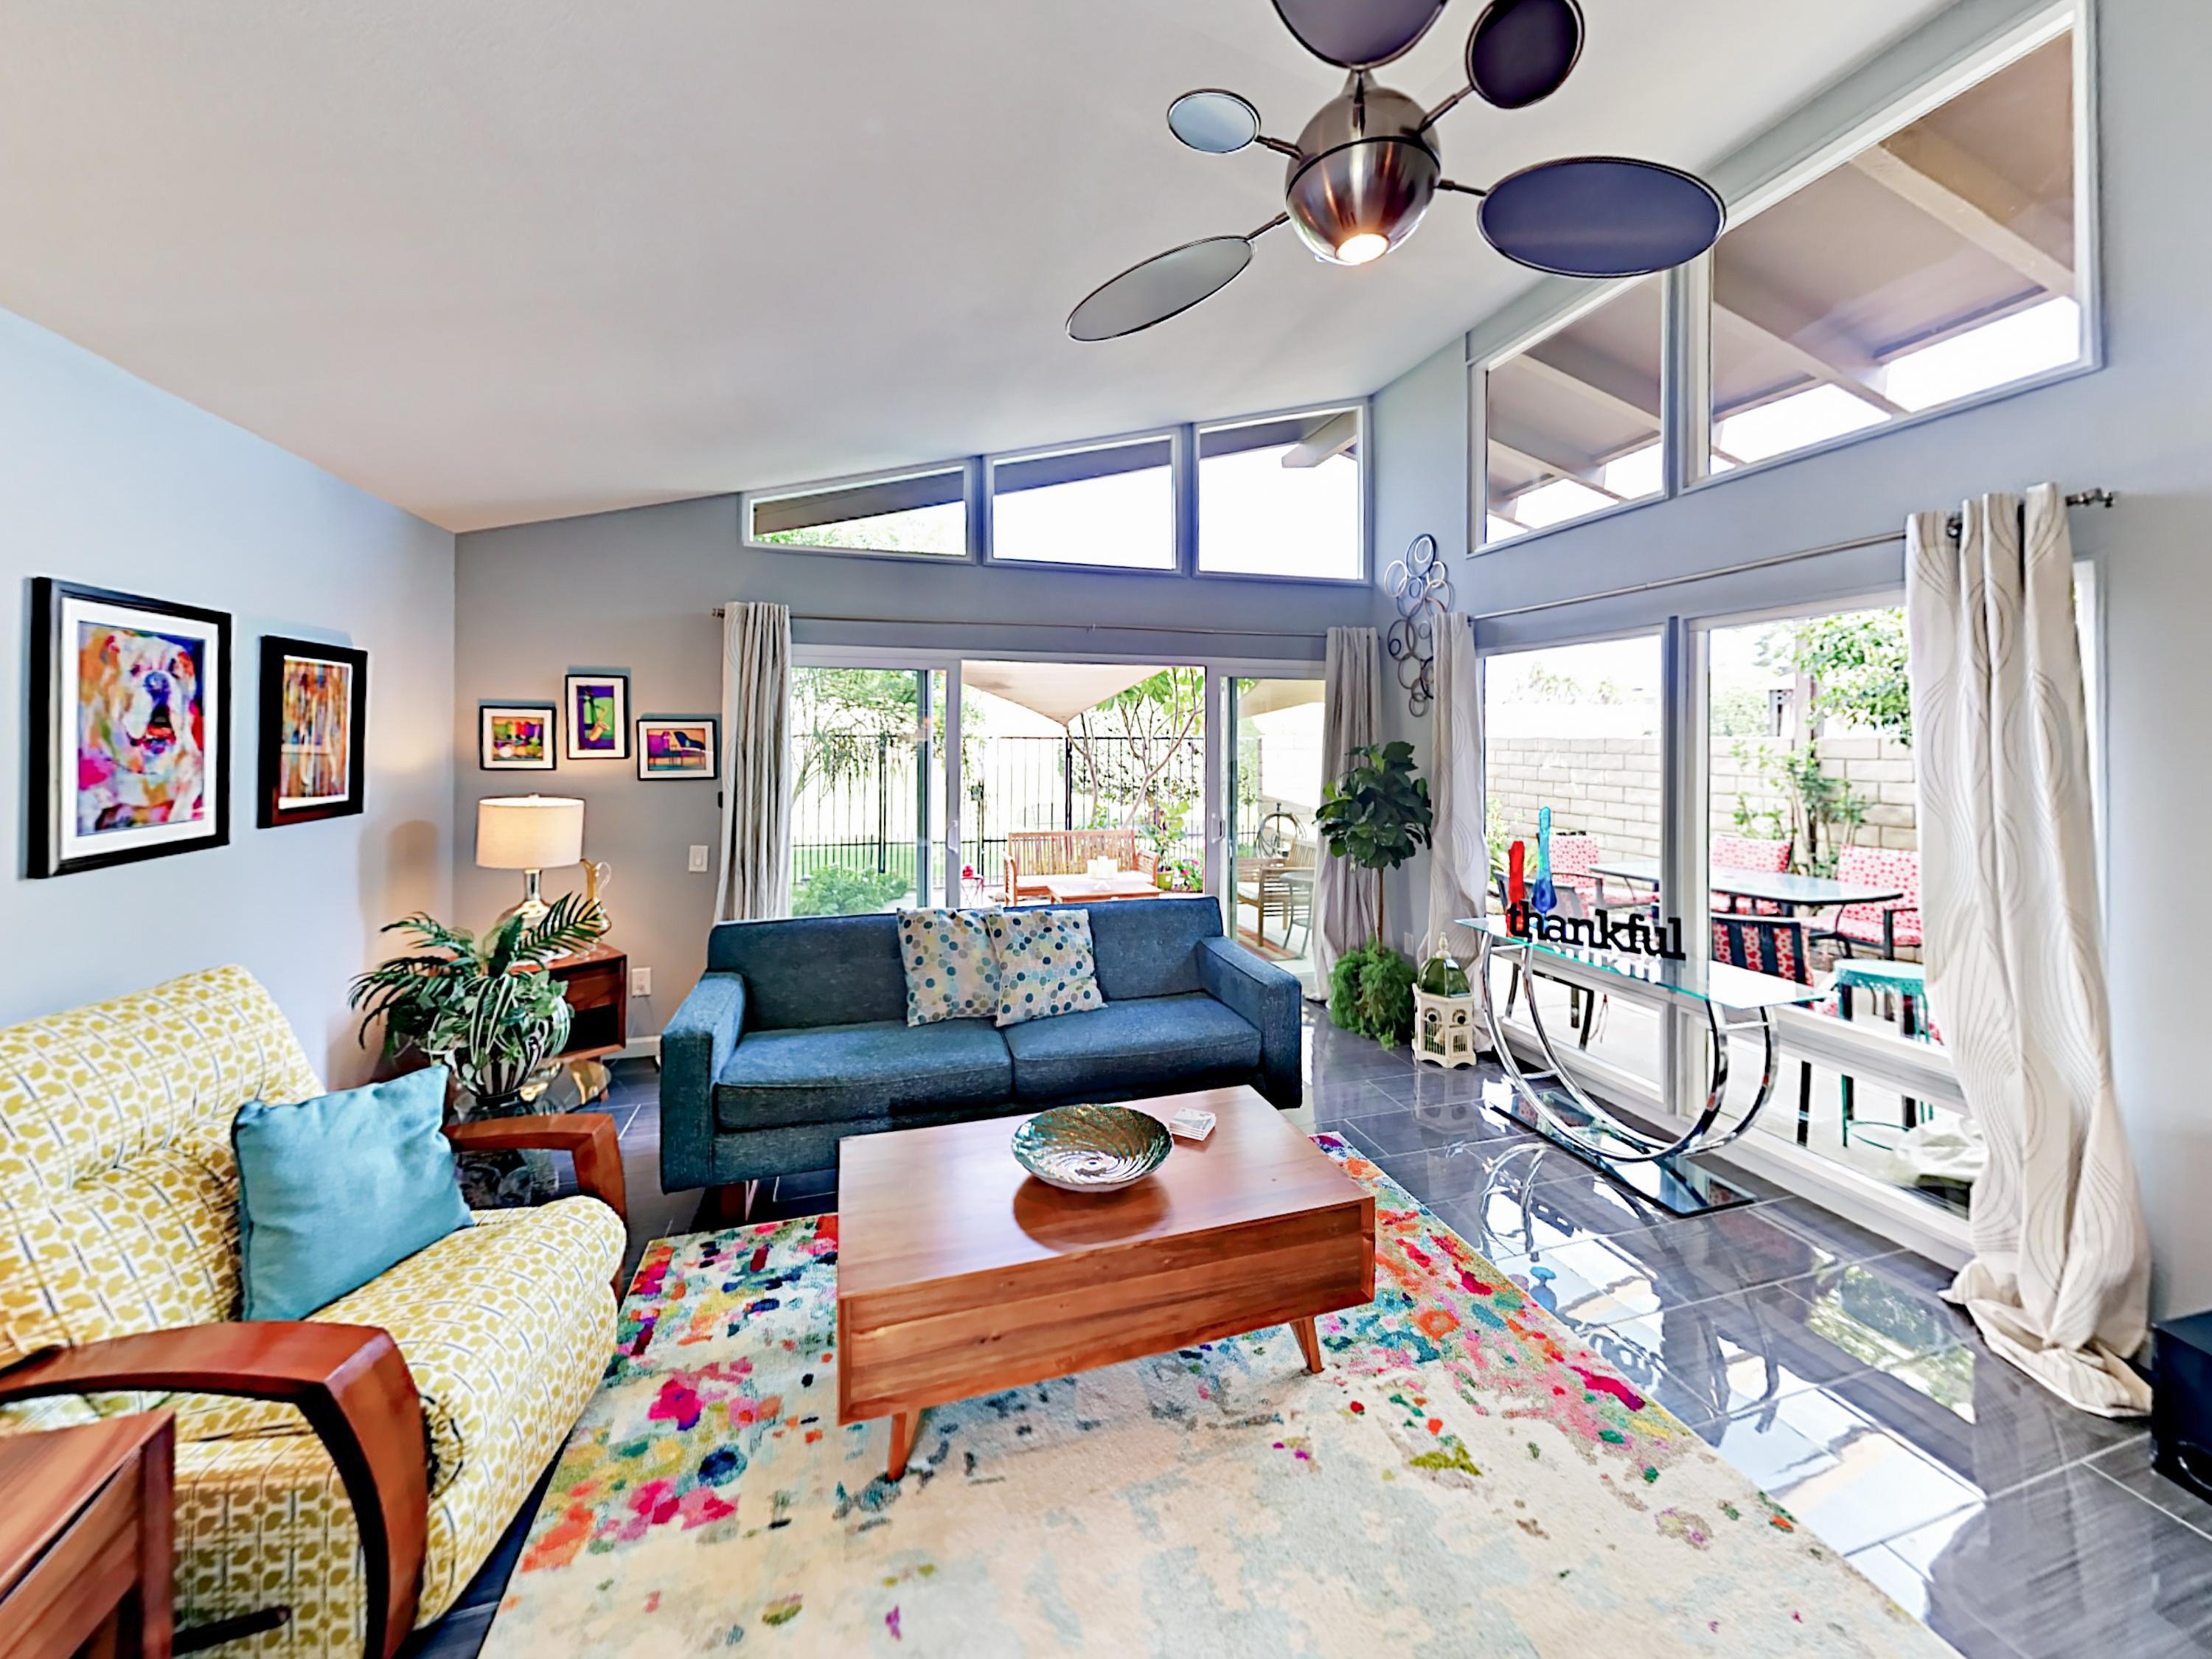 Property Image 1 - Colorful and Artistic Condo, Walk to Empire Polo Club